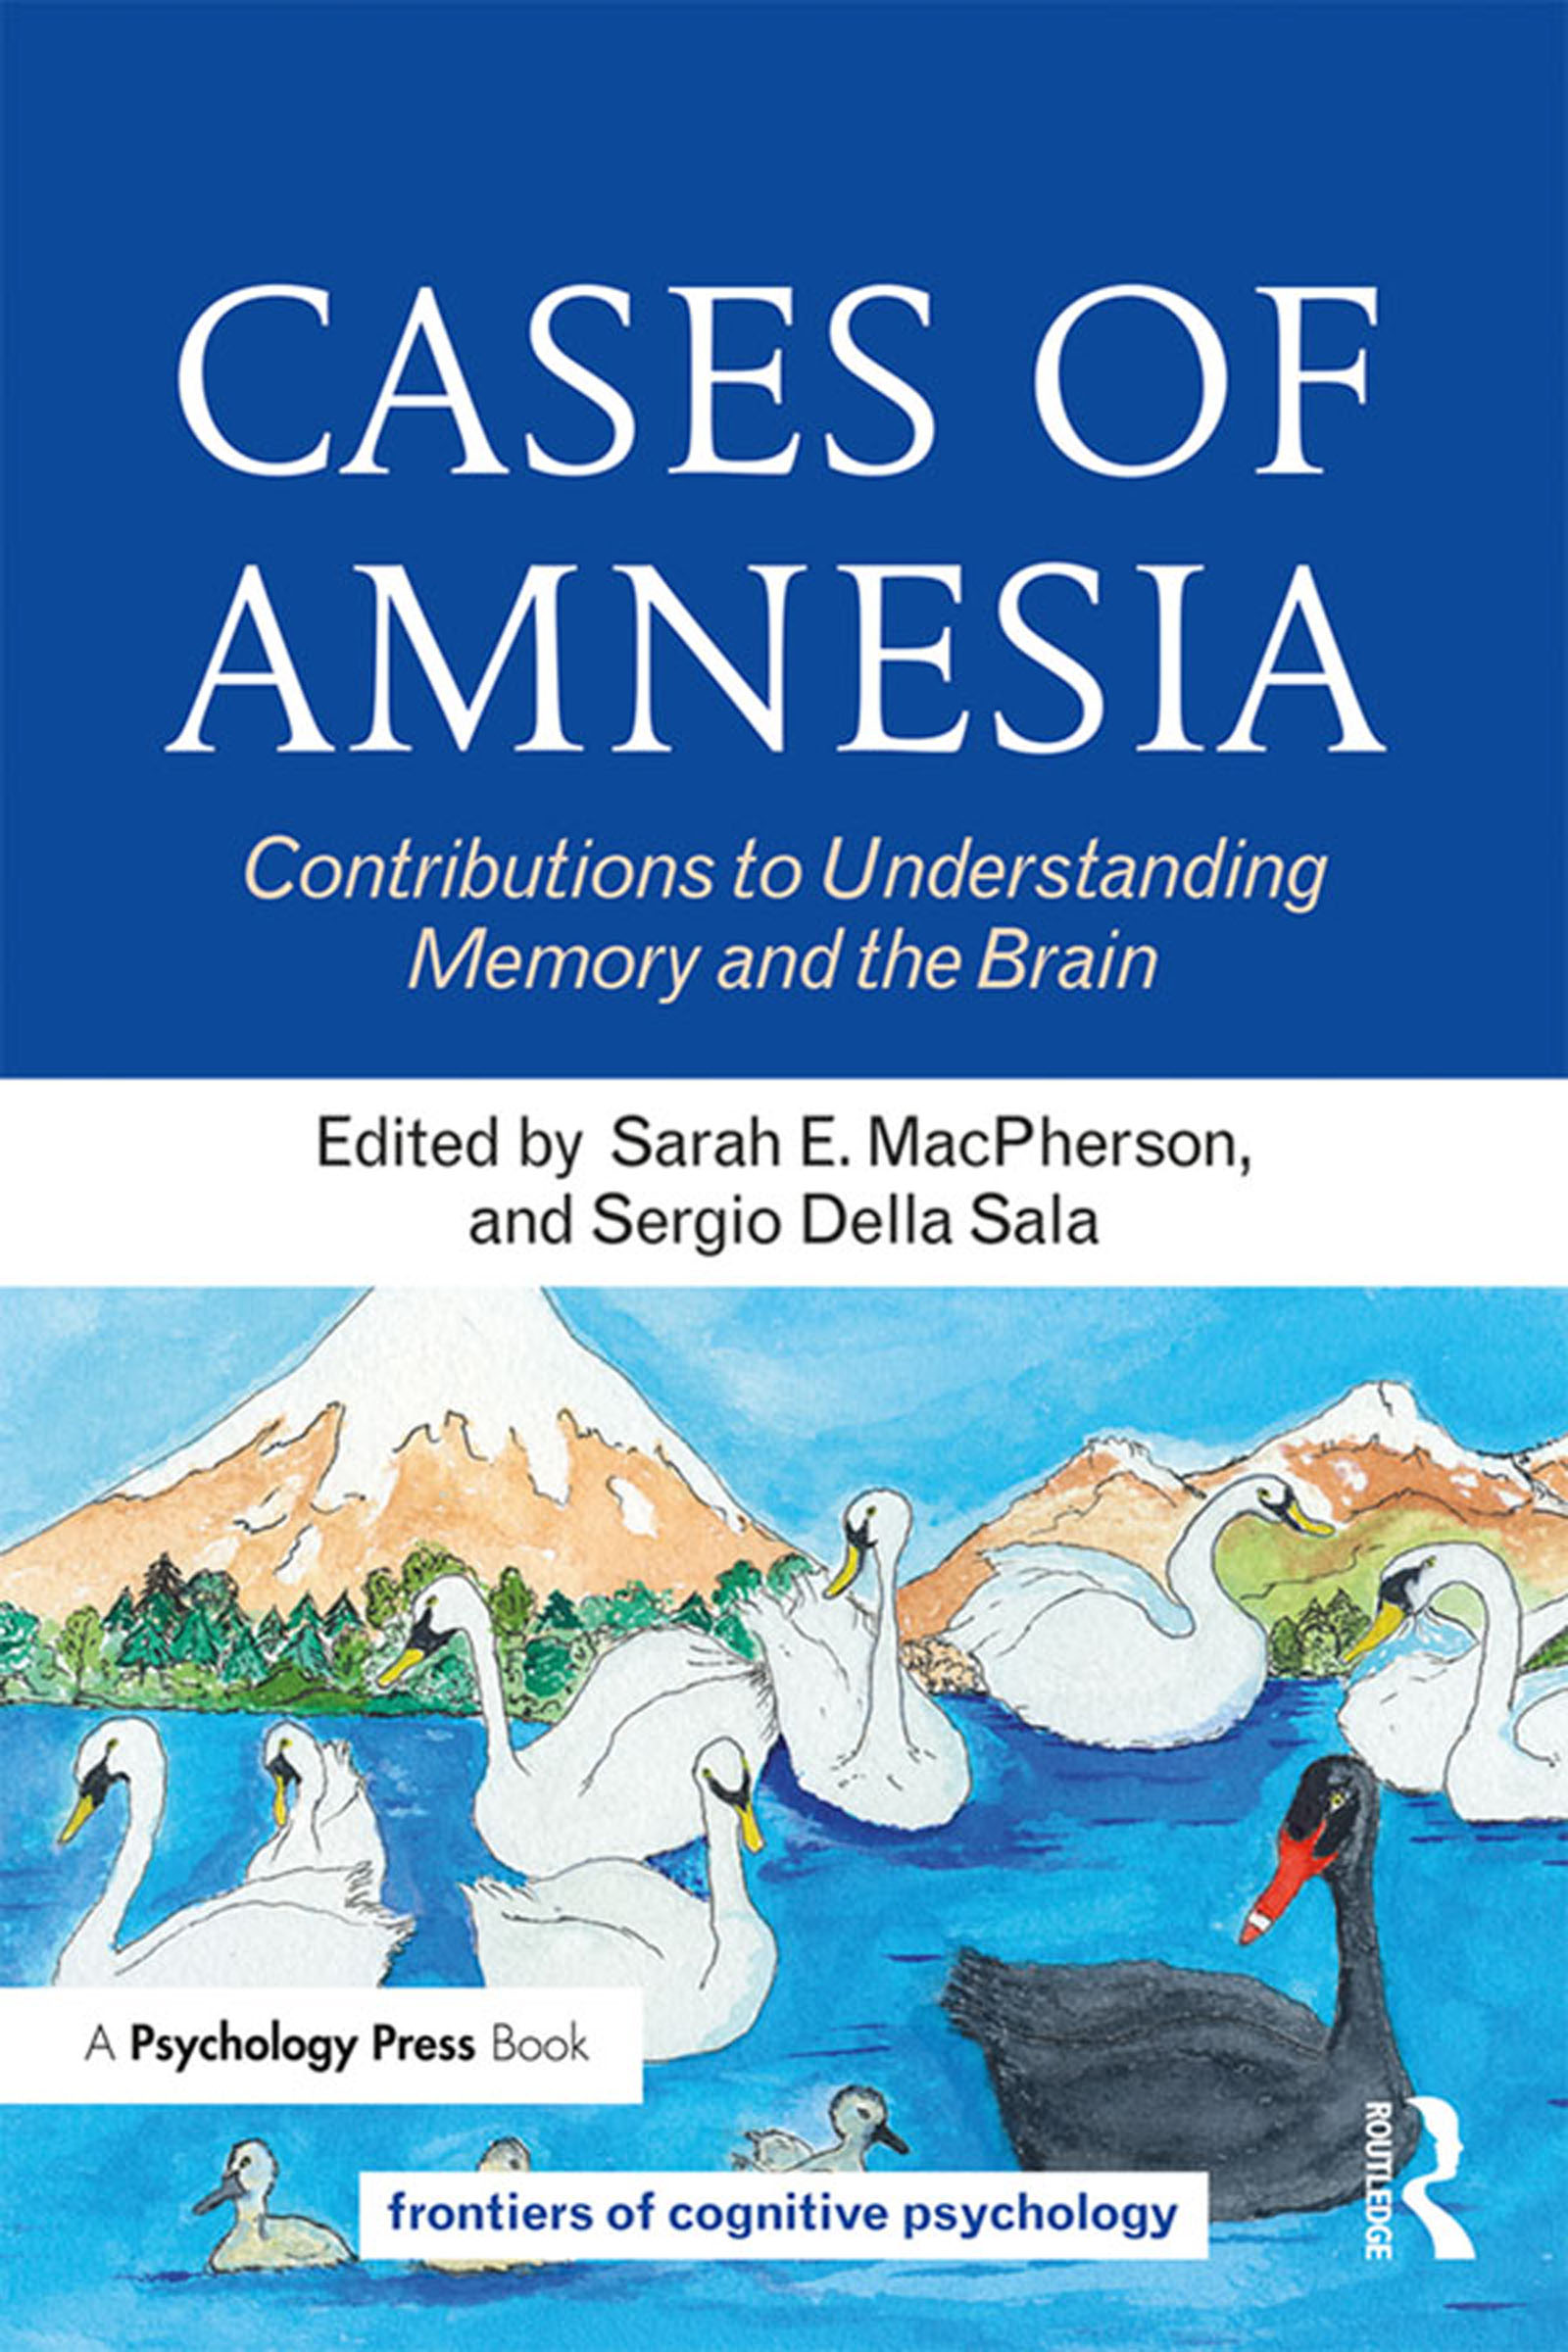 Cases of Amnesia: Contributions to Understanding Memory and the Brain book cover